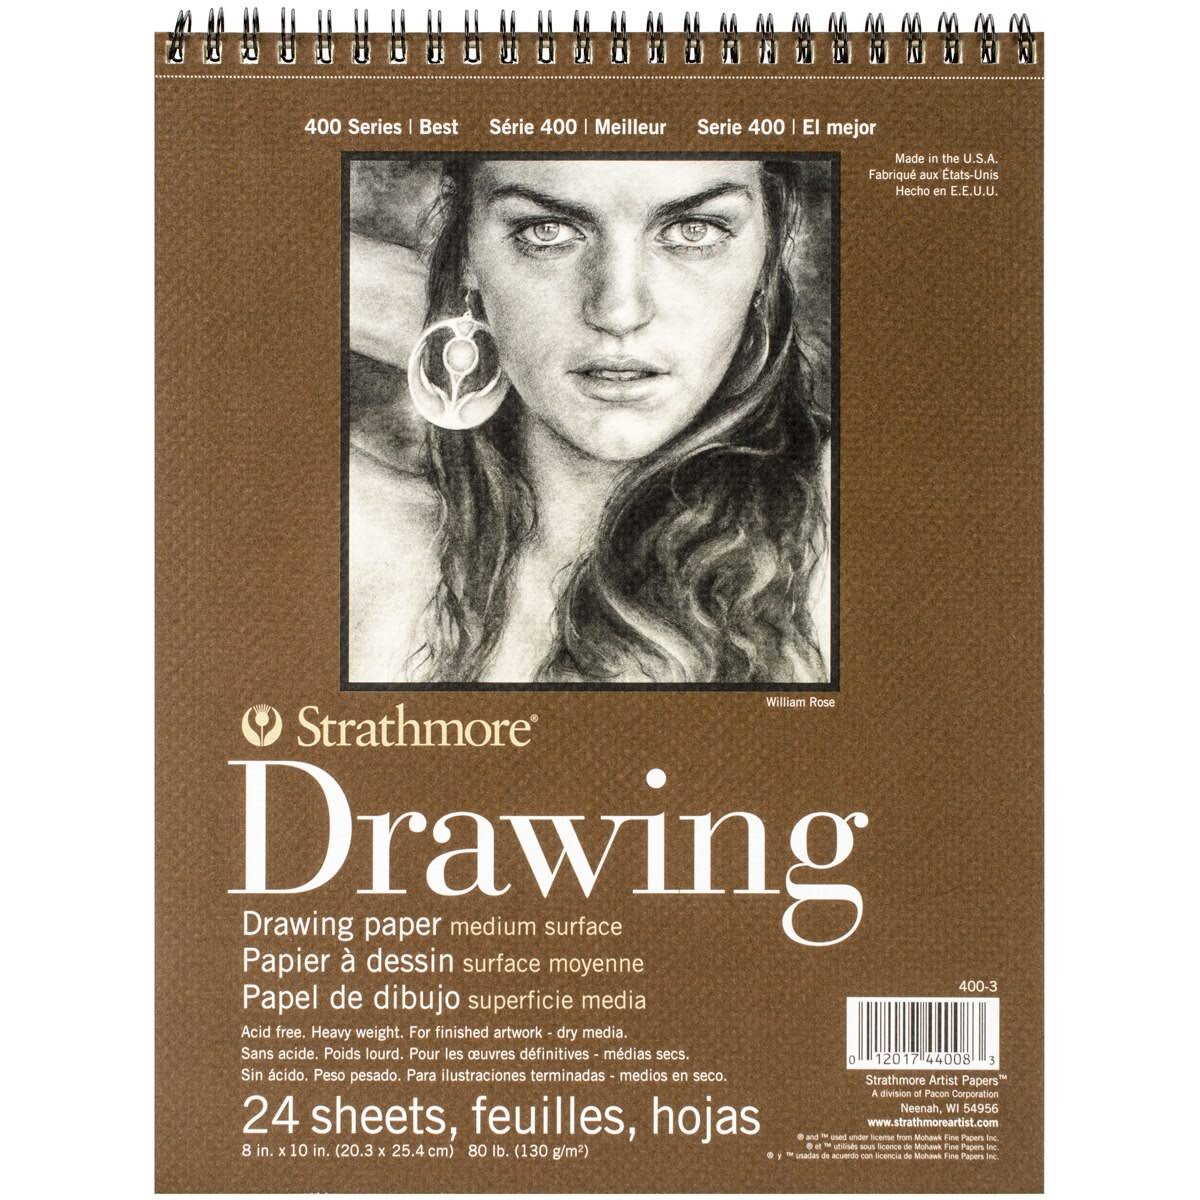 "Strathmore Drawing Spiral Paper Pad - Medium, 8""X10"", 24 Sheets"